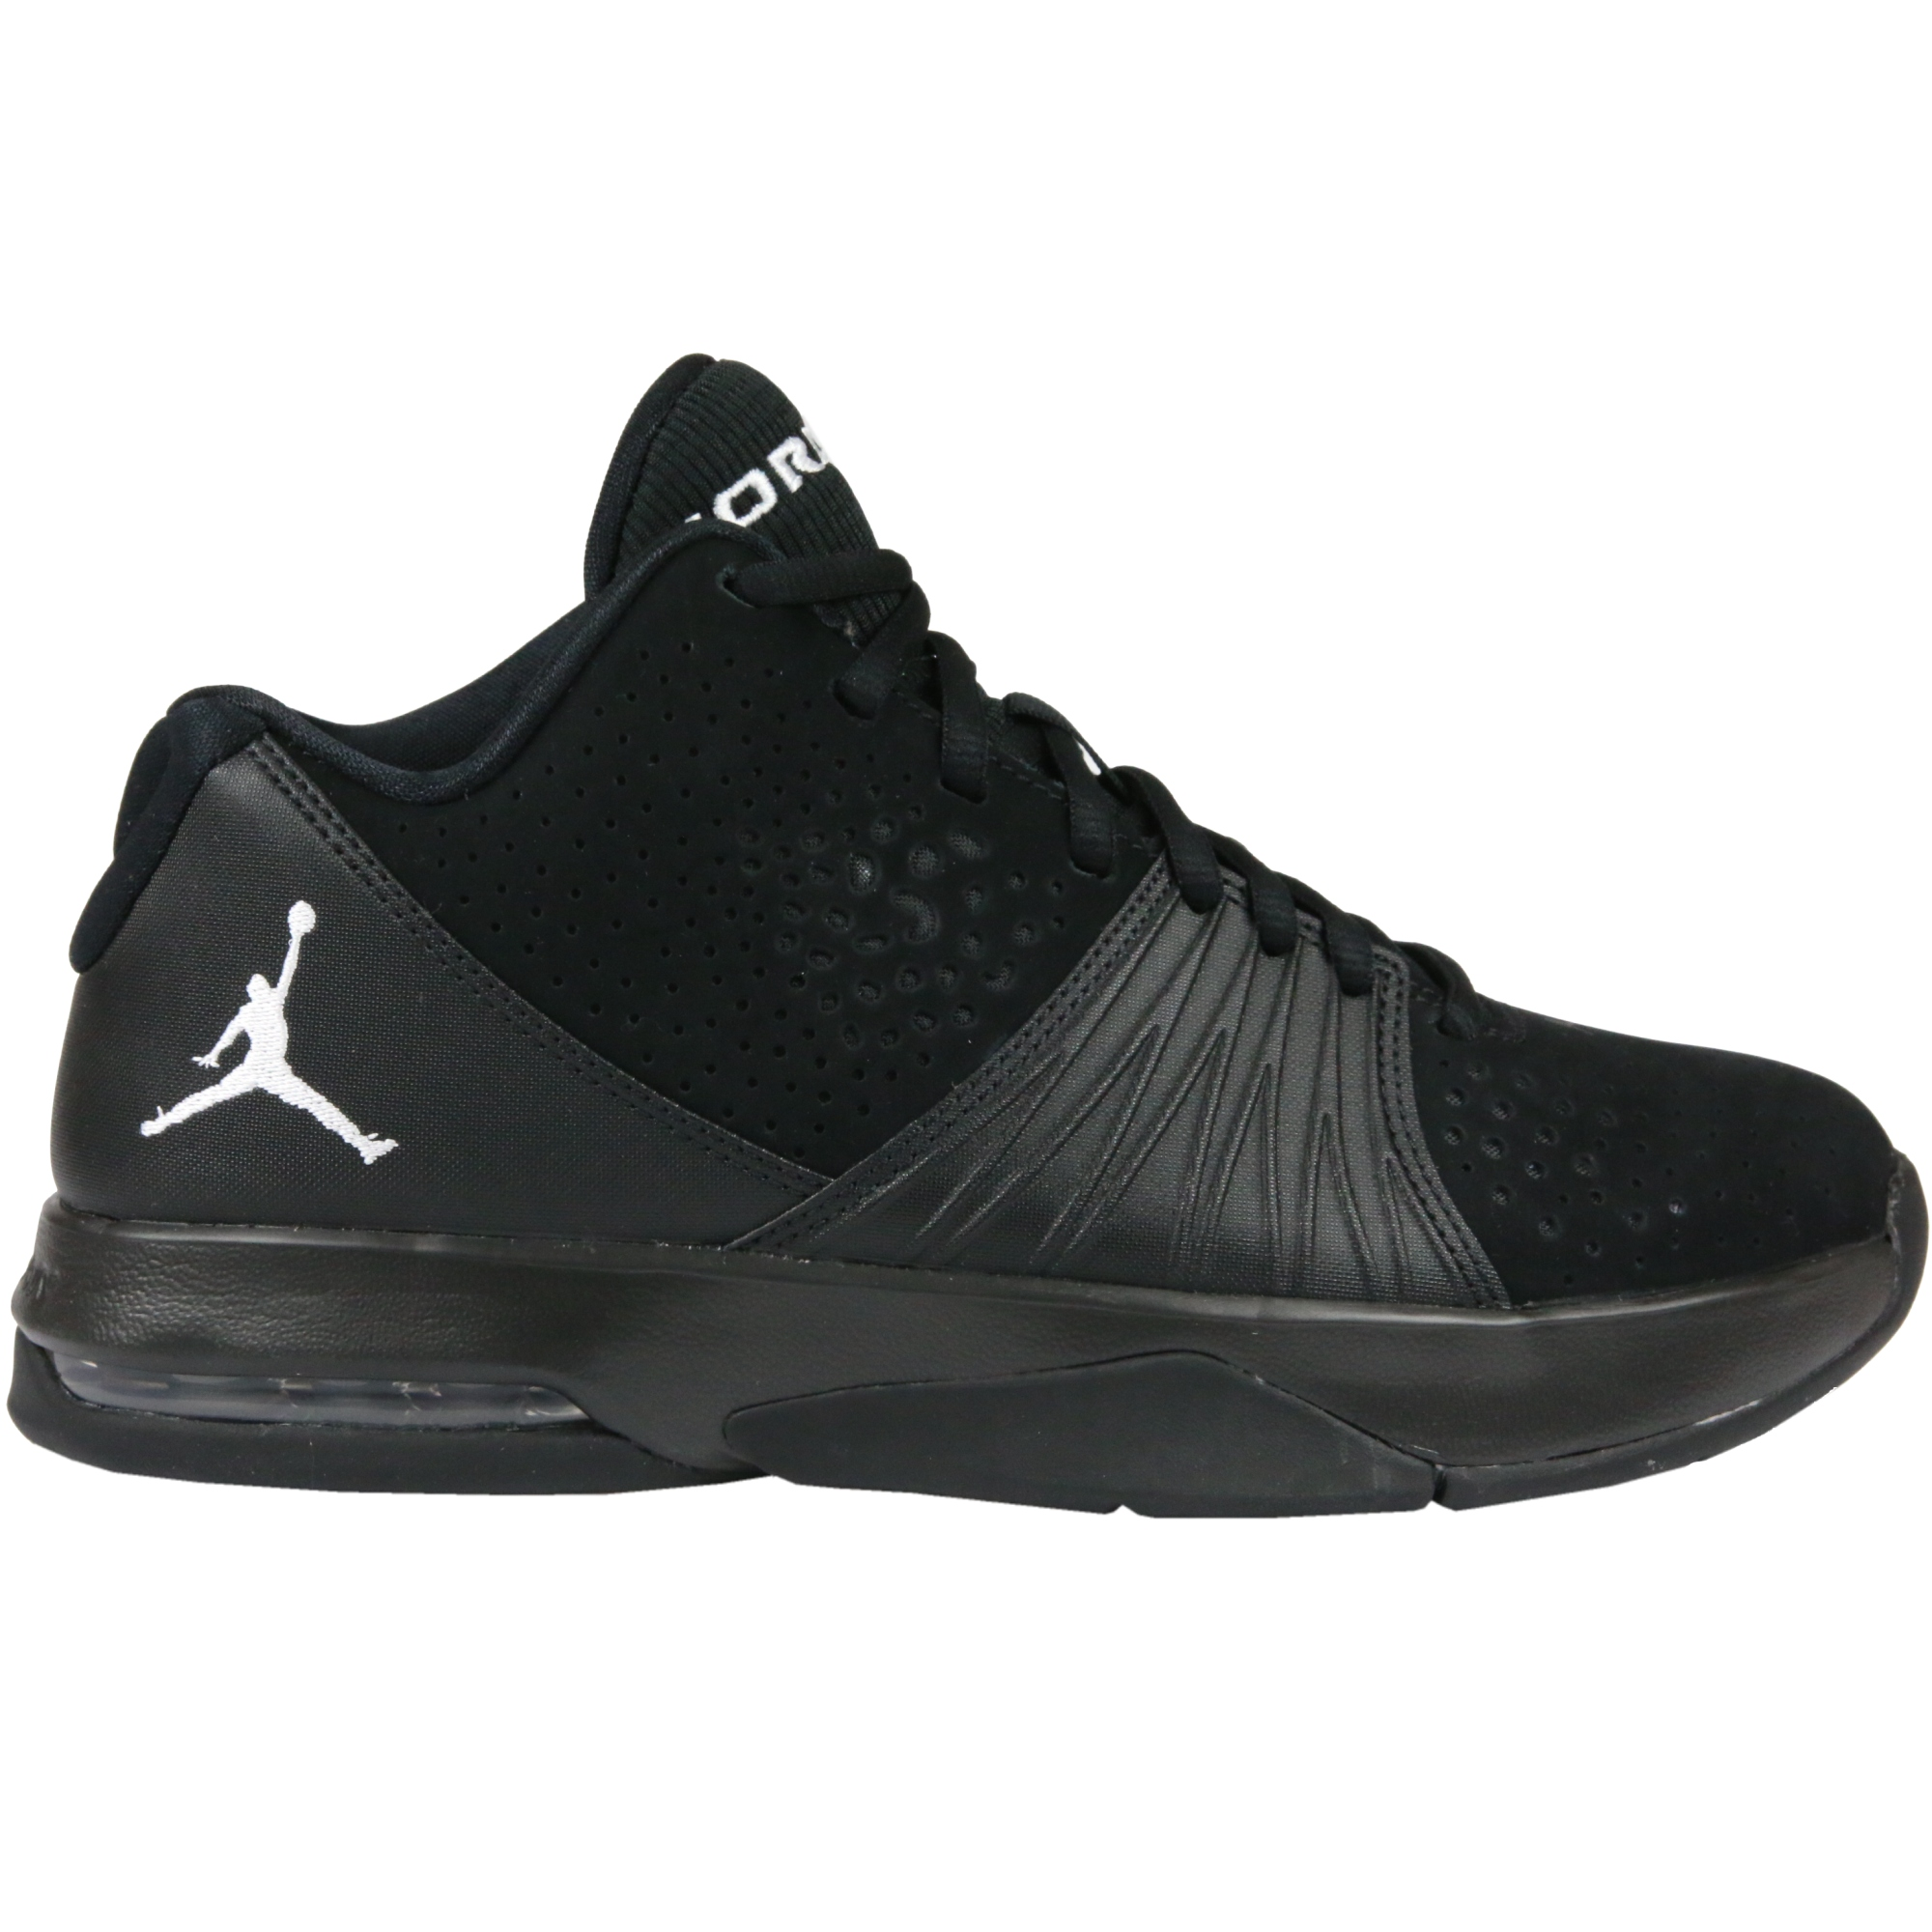 nike jordan eclipse reveal cp3 ix ae retro. Black Bedroom Furniture Sets. Home Design Ideas